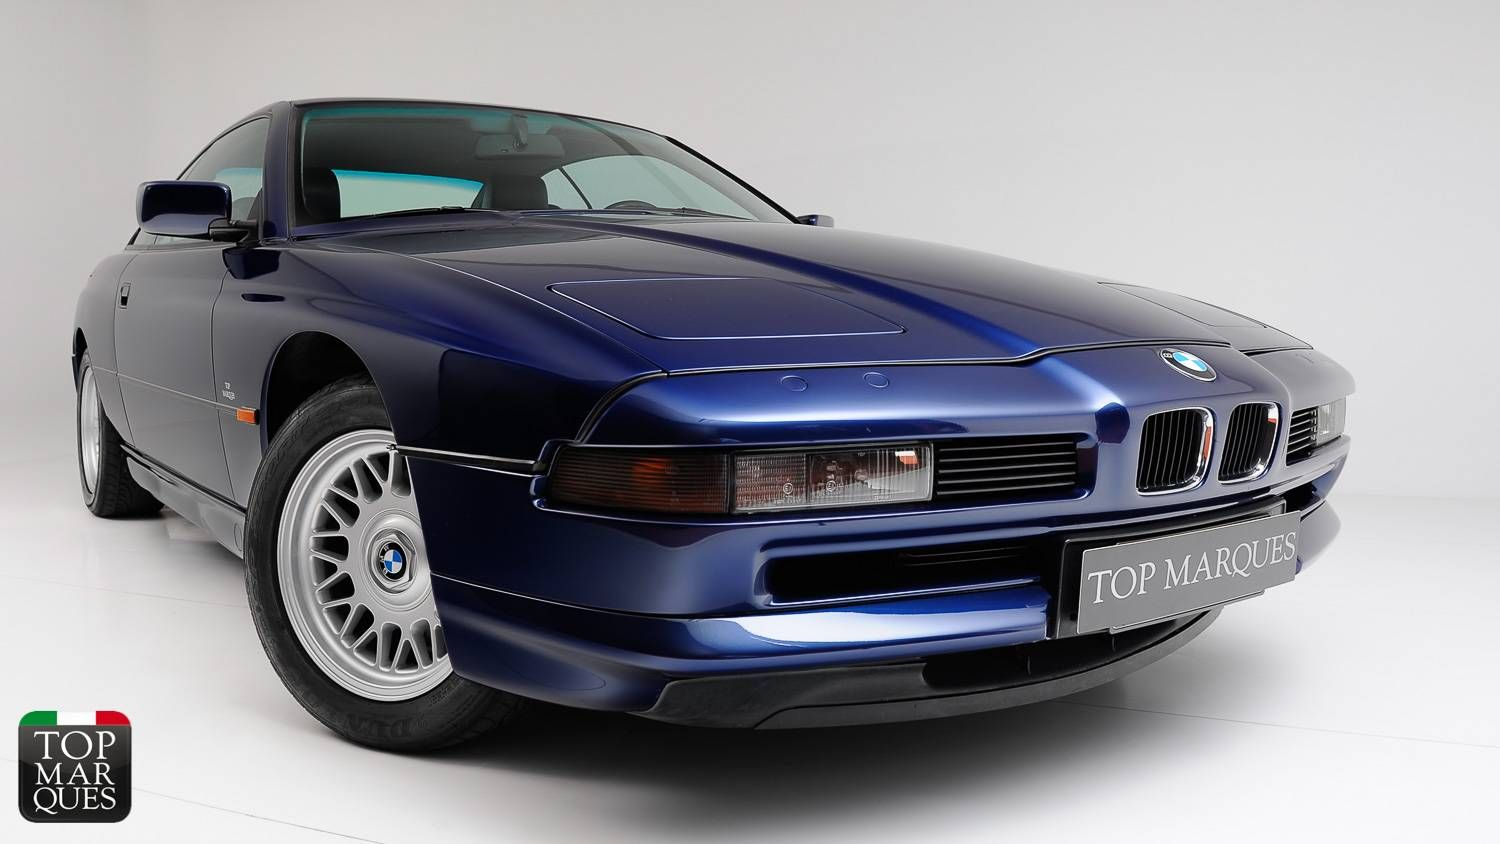 bmw 850i bmw classic cars pinterest bmw. Black Bedroom Furniture Sets. Home Design Ideas